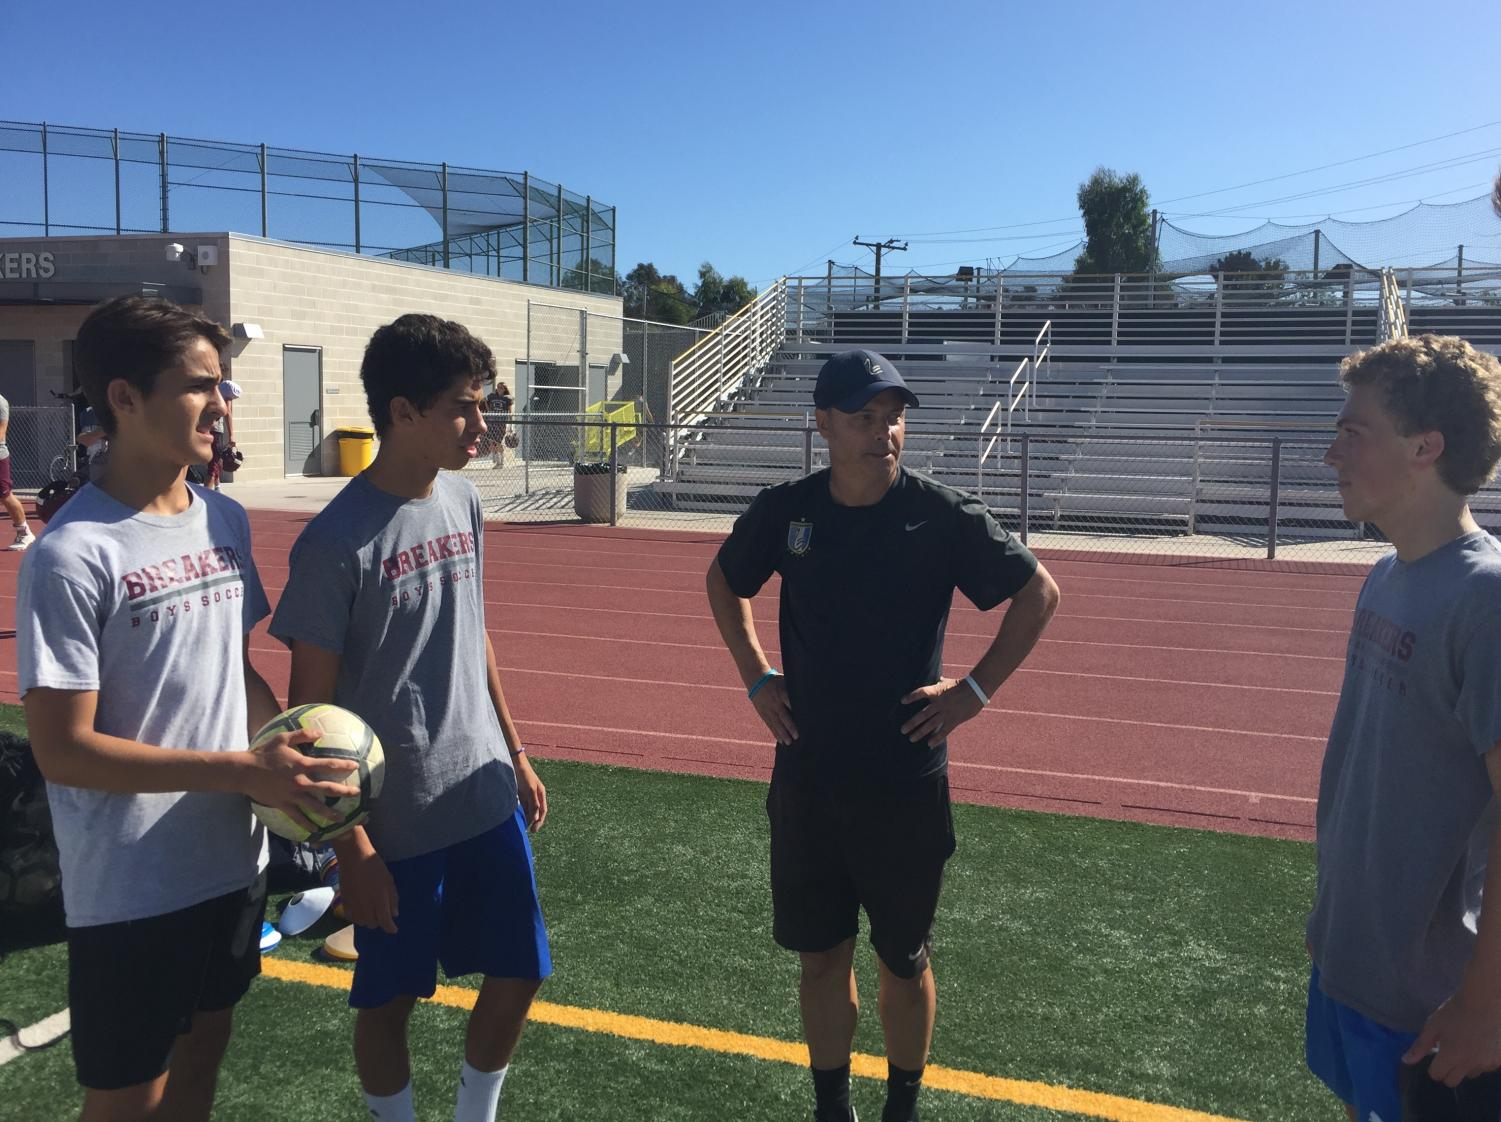 Thomas (center) talks to his players (from left to right) Adrian Ricci-Fisher, Diego Tellez Rodriquez and Griffin Kristensen about the upcoming season. Coach Thomas has found success with the team in the past and looks to continue that success with his new players.